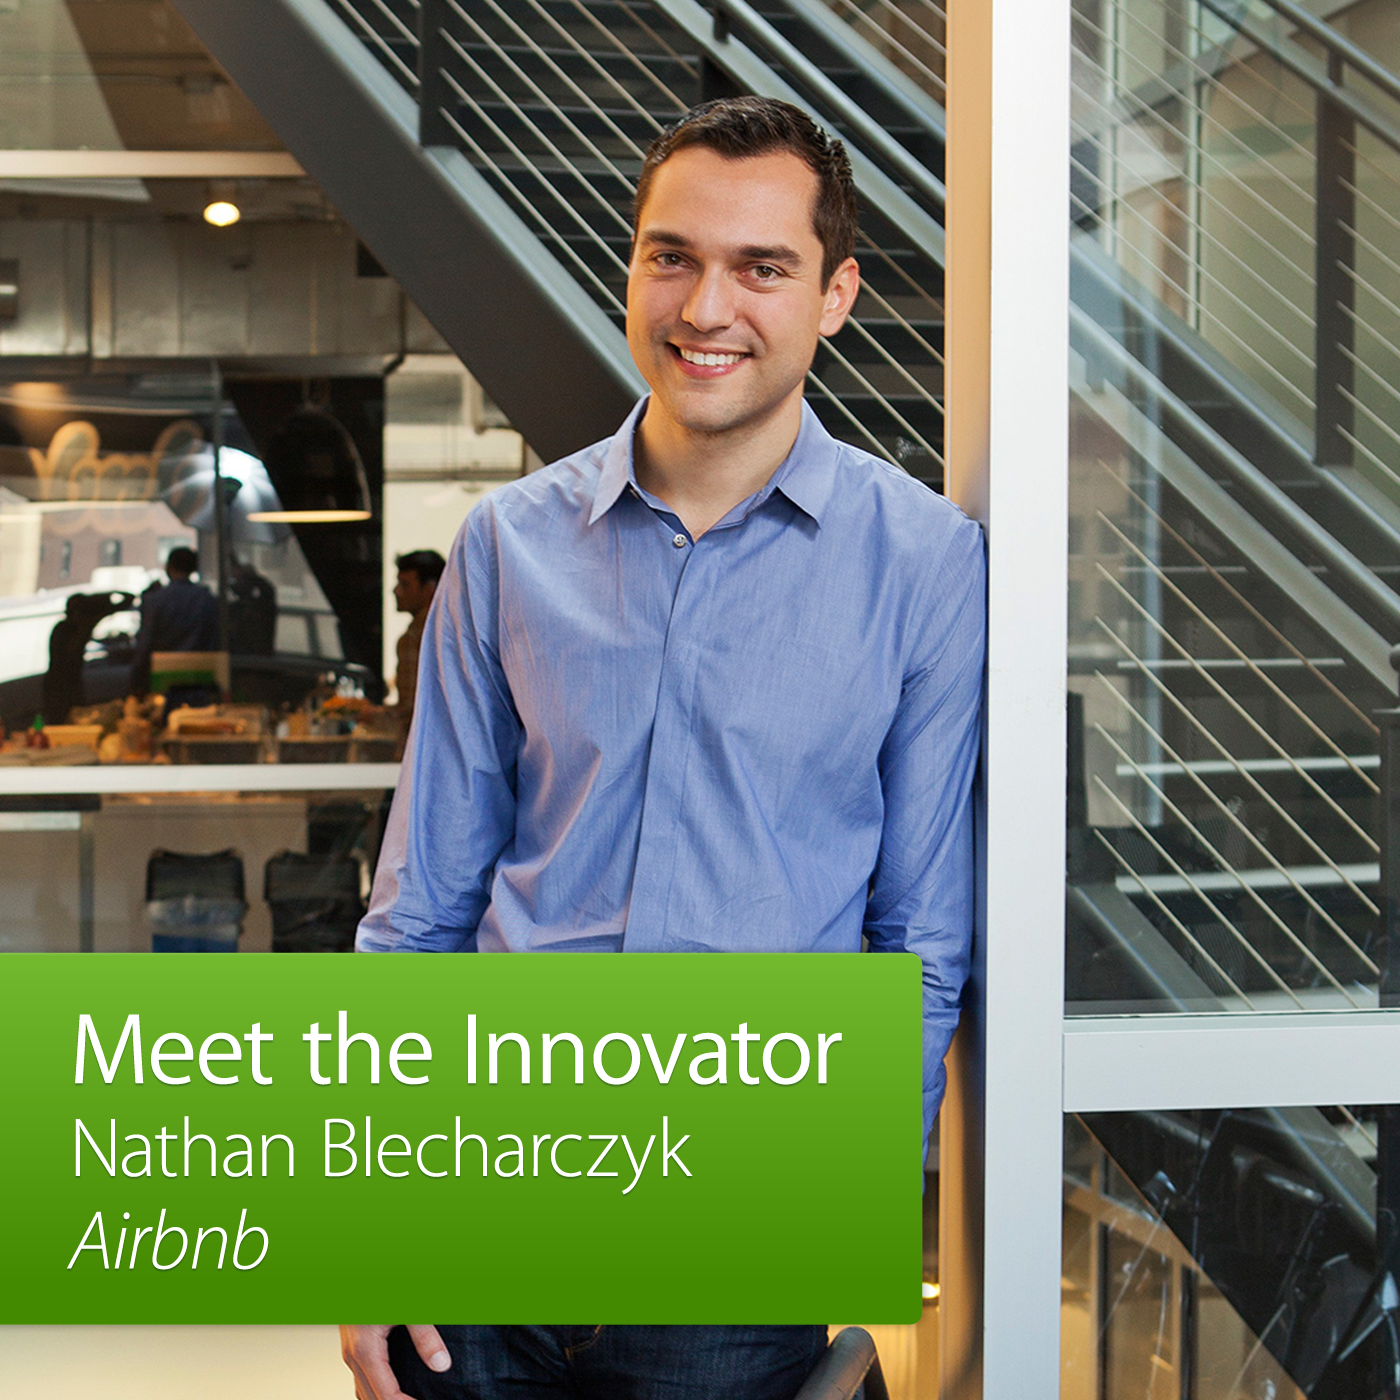 Airbnb: Meet the Innovator